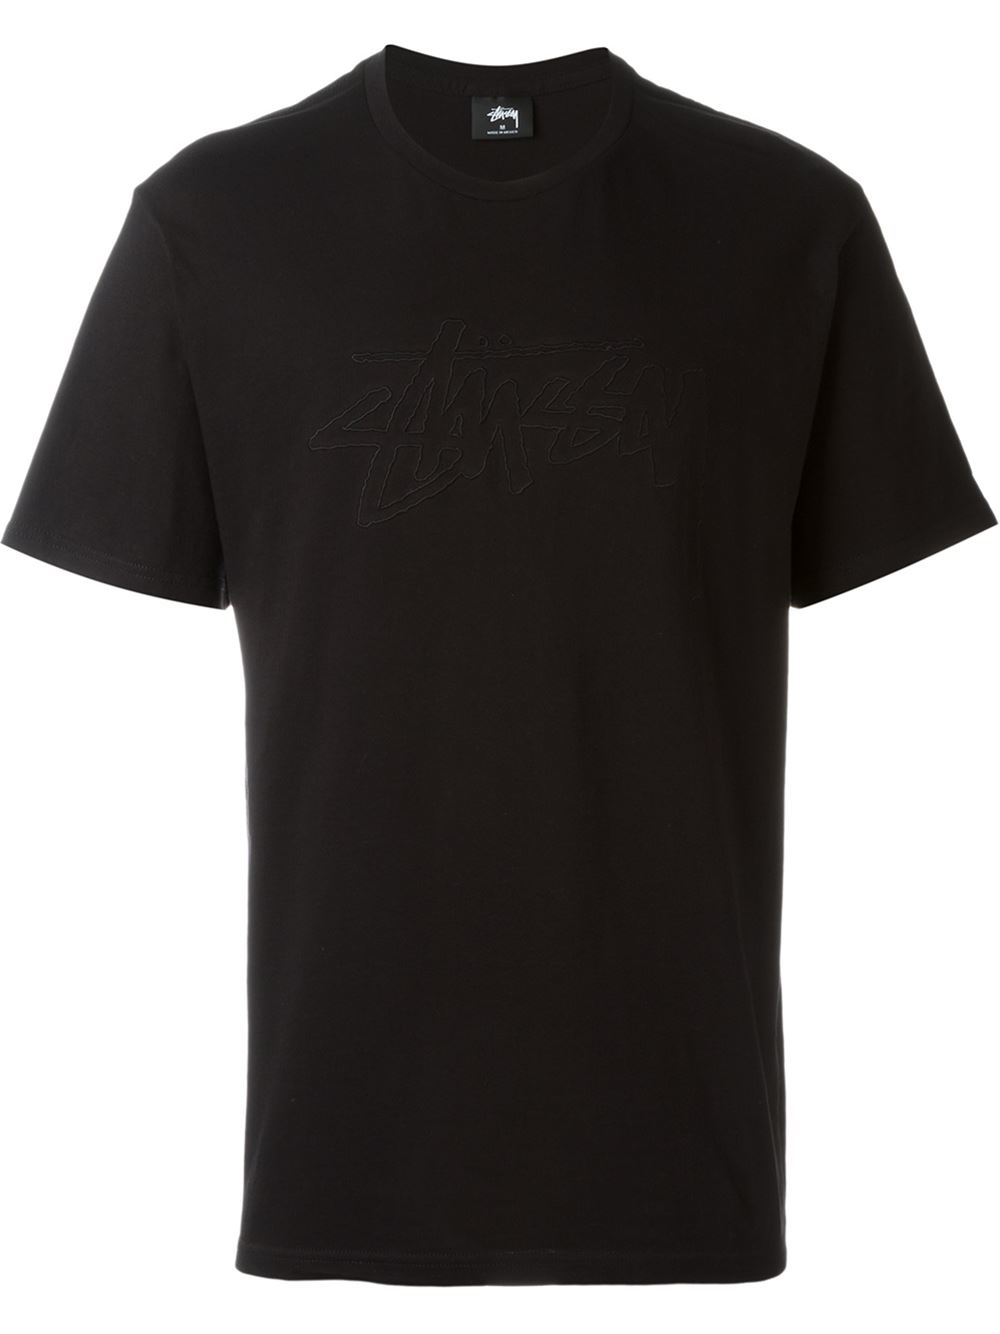 Stussy Embroidered Logo T Shirt In Black For Men Lyst